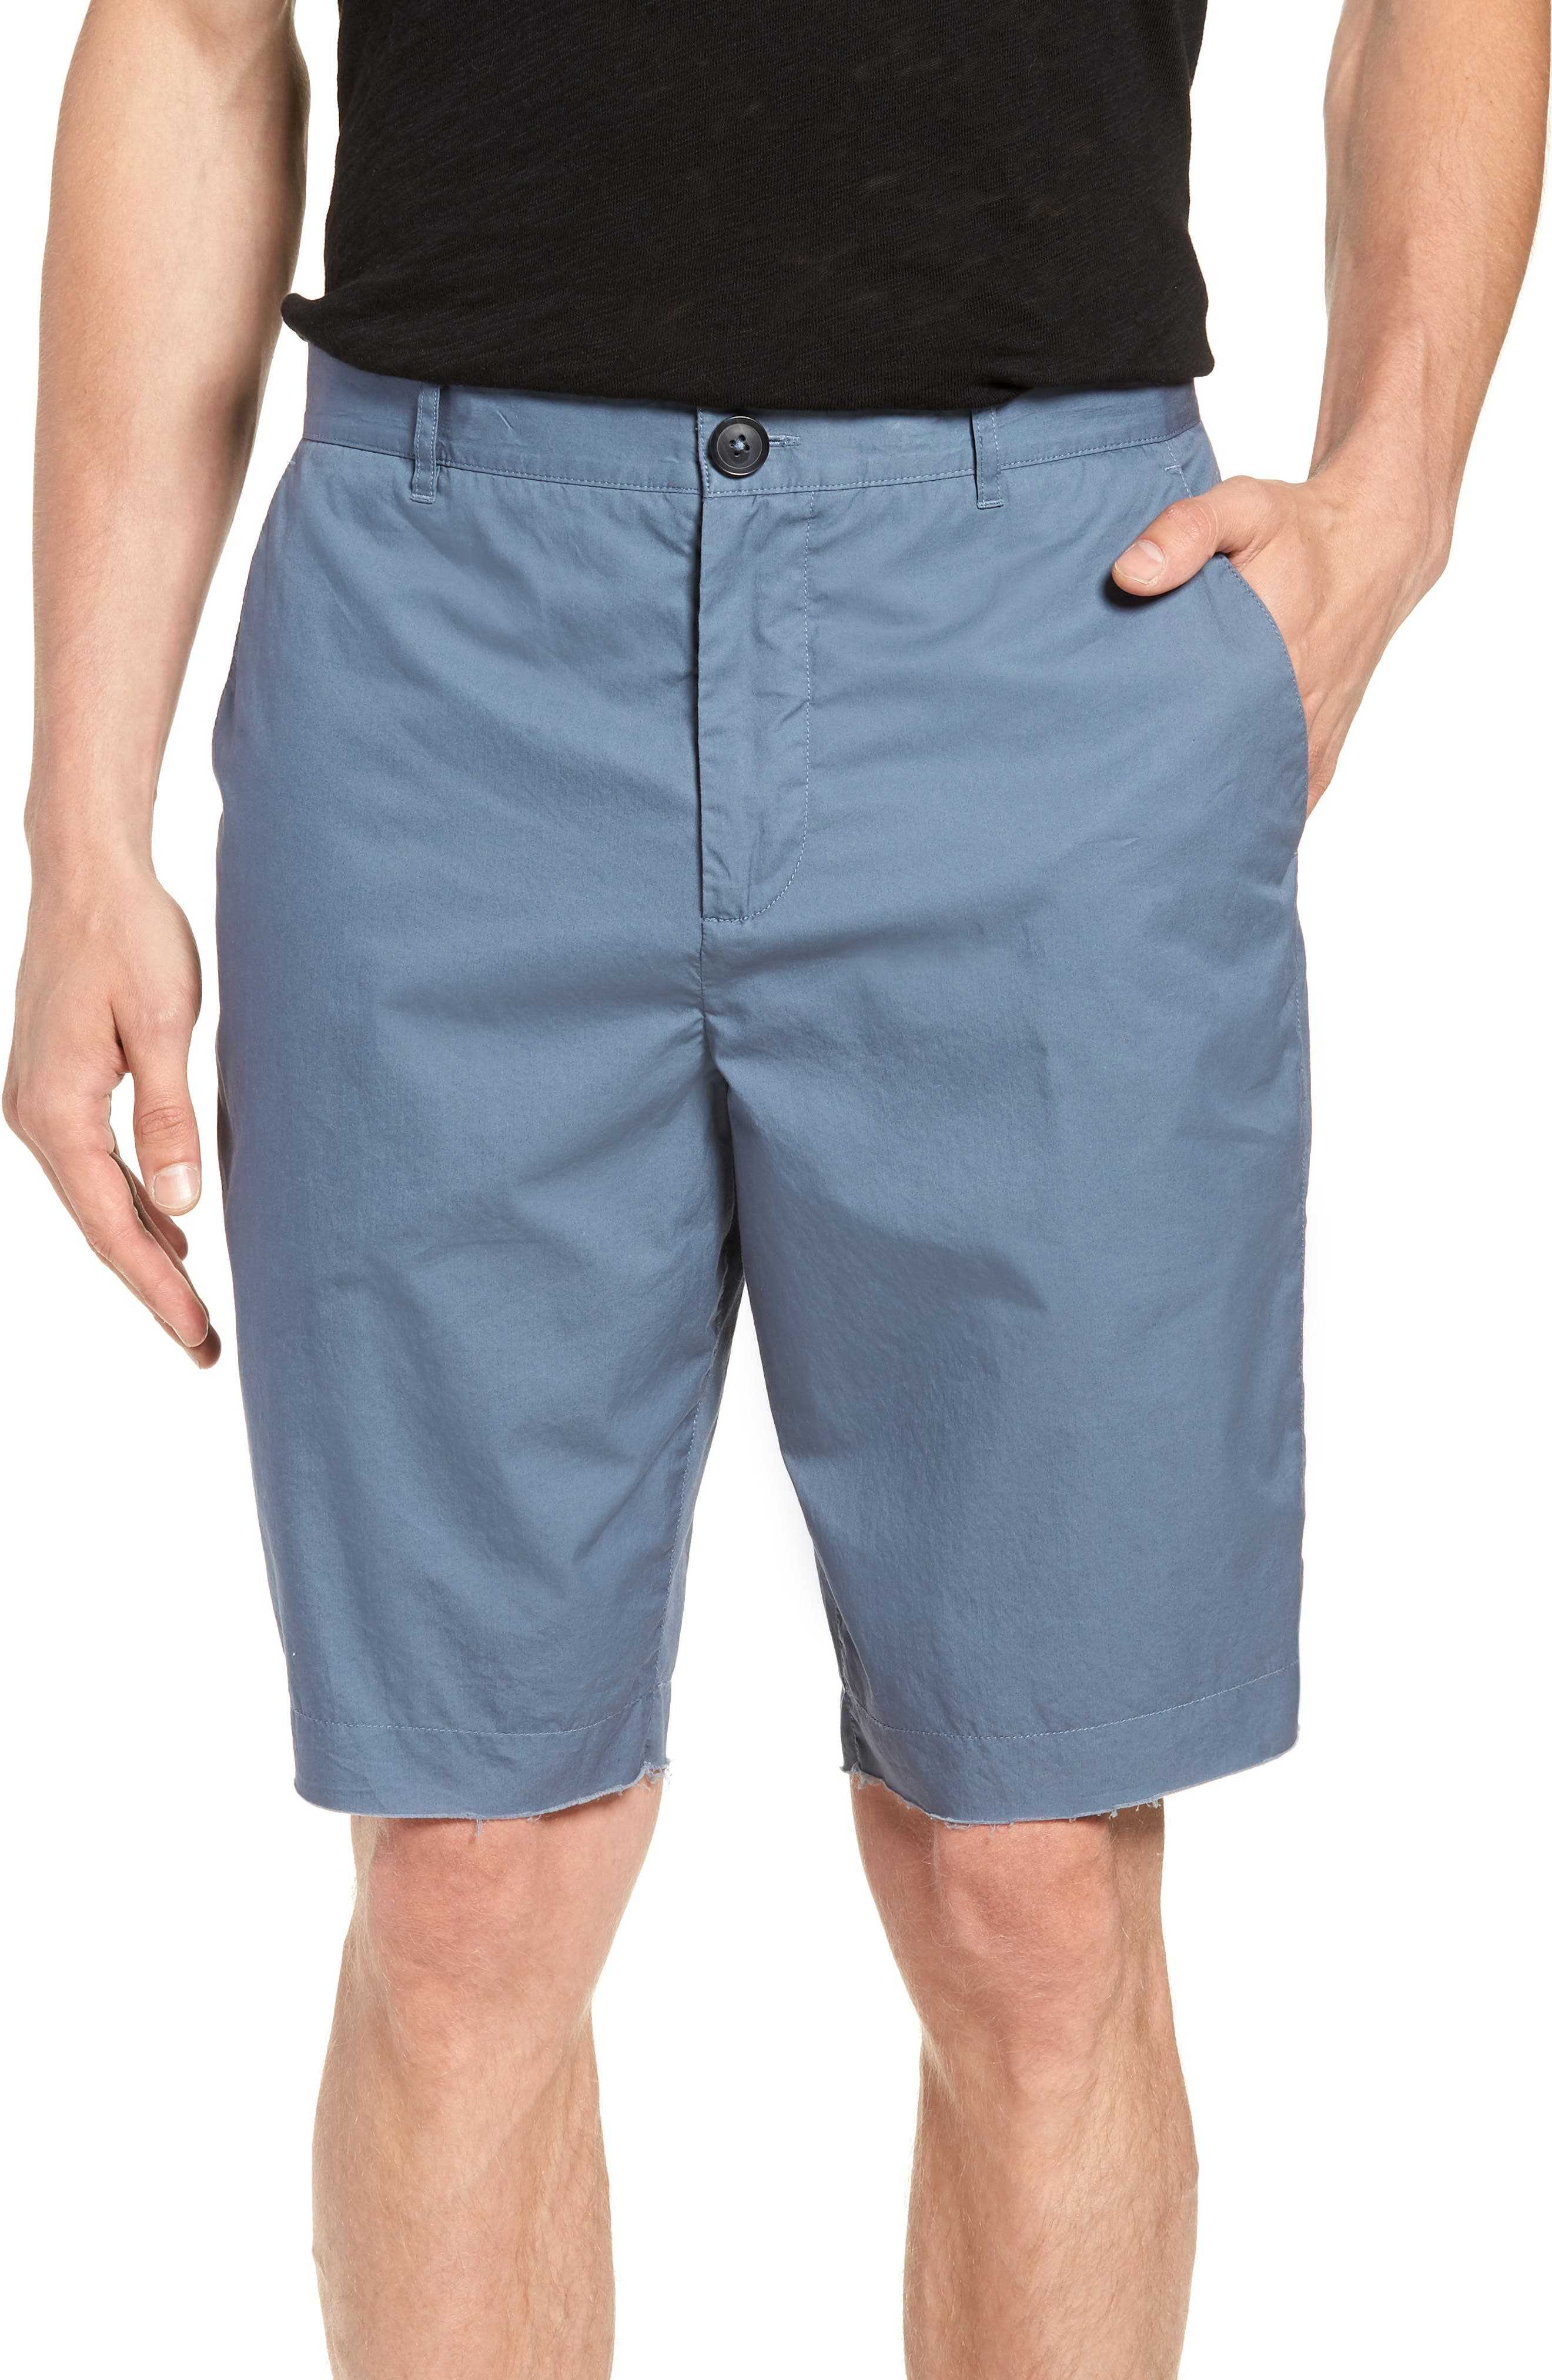 Poplin Cotton Shorts,                             Main thumbnail 1, color,                             425